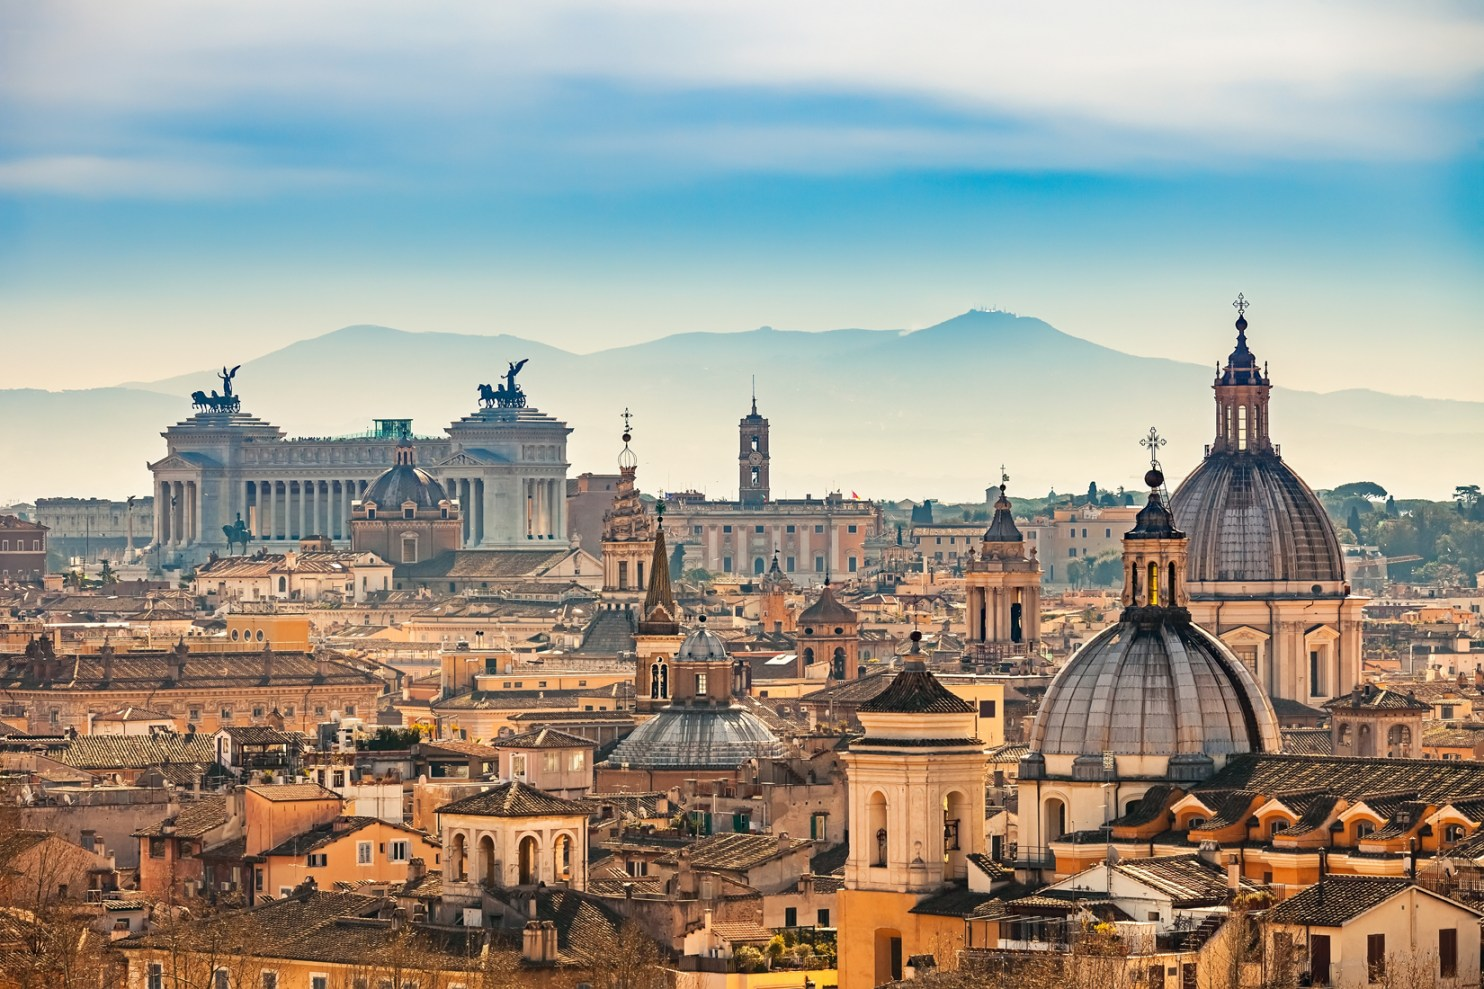 Rome skyline in the morning